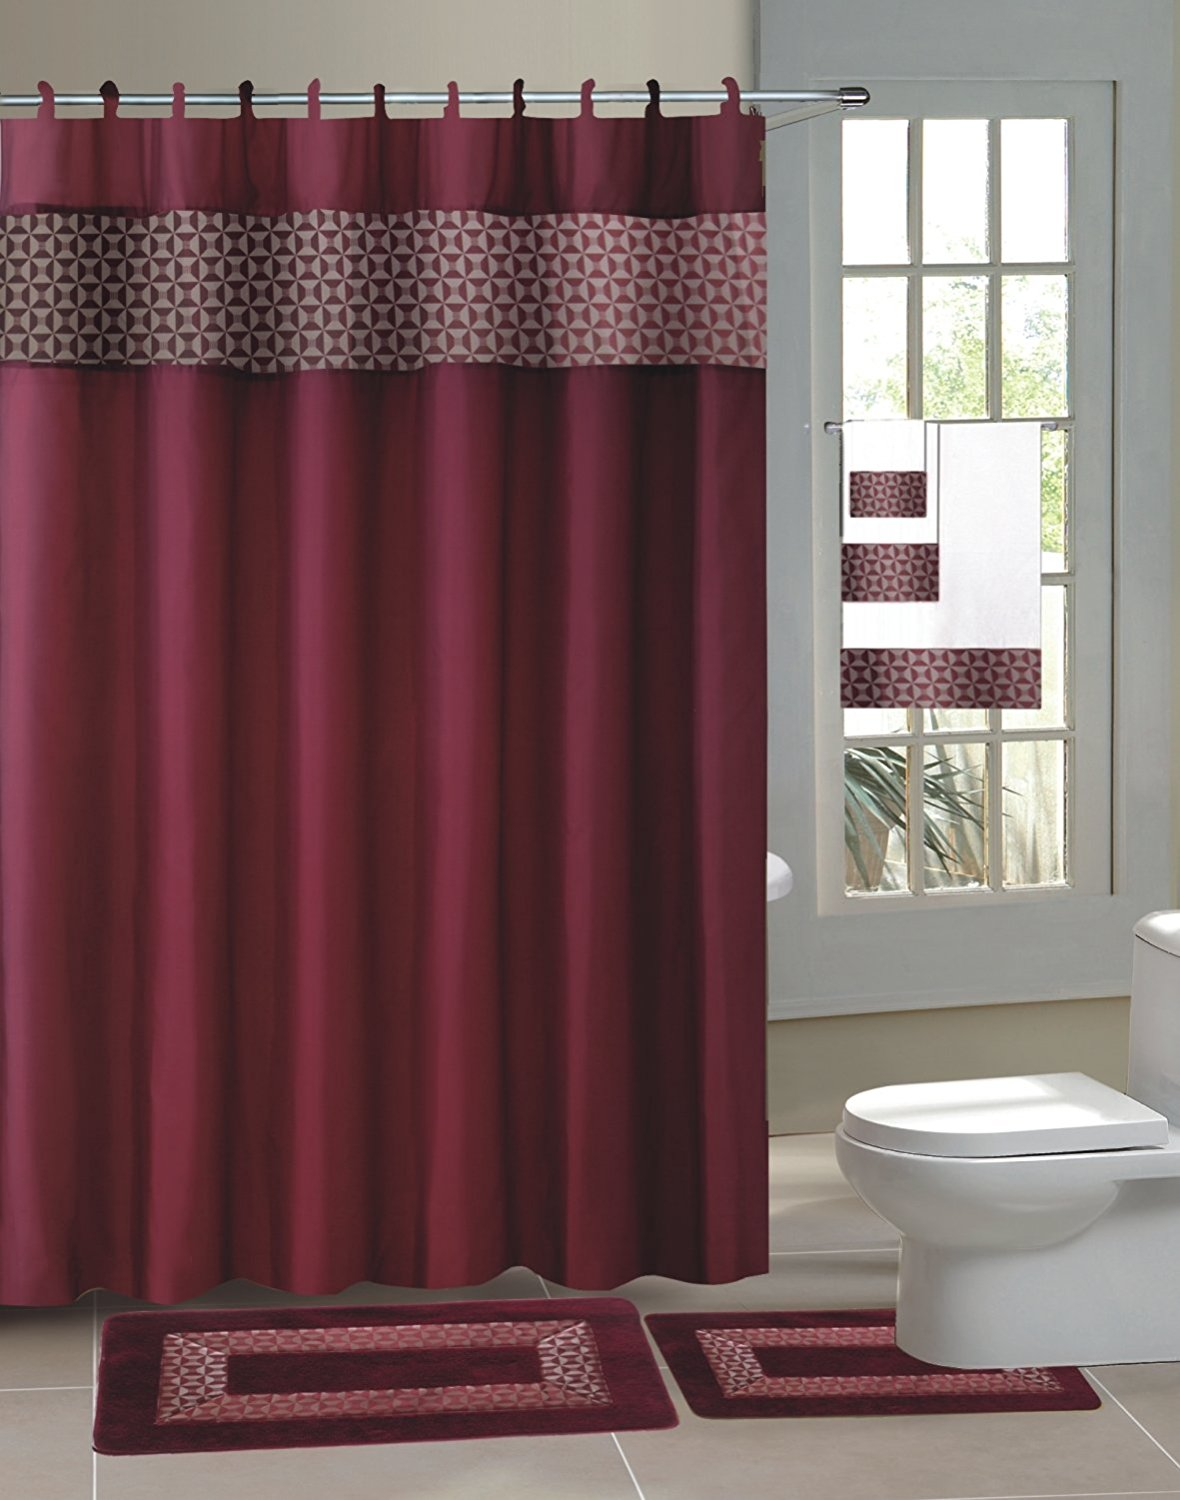 15pc BURGUNDY FRESCO Bathroom Set Printed Banded Rubber Backing Rug Bath  Mats With Fabric Shower Curtain